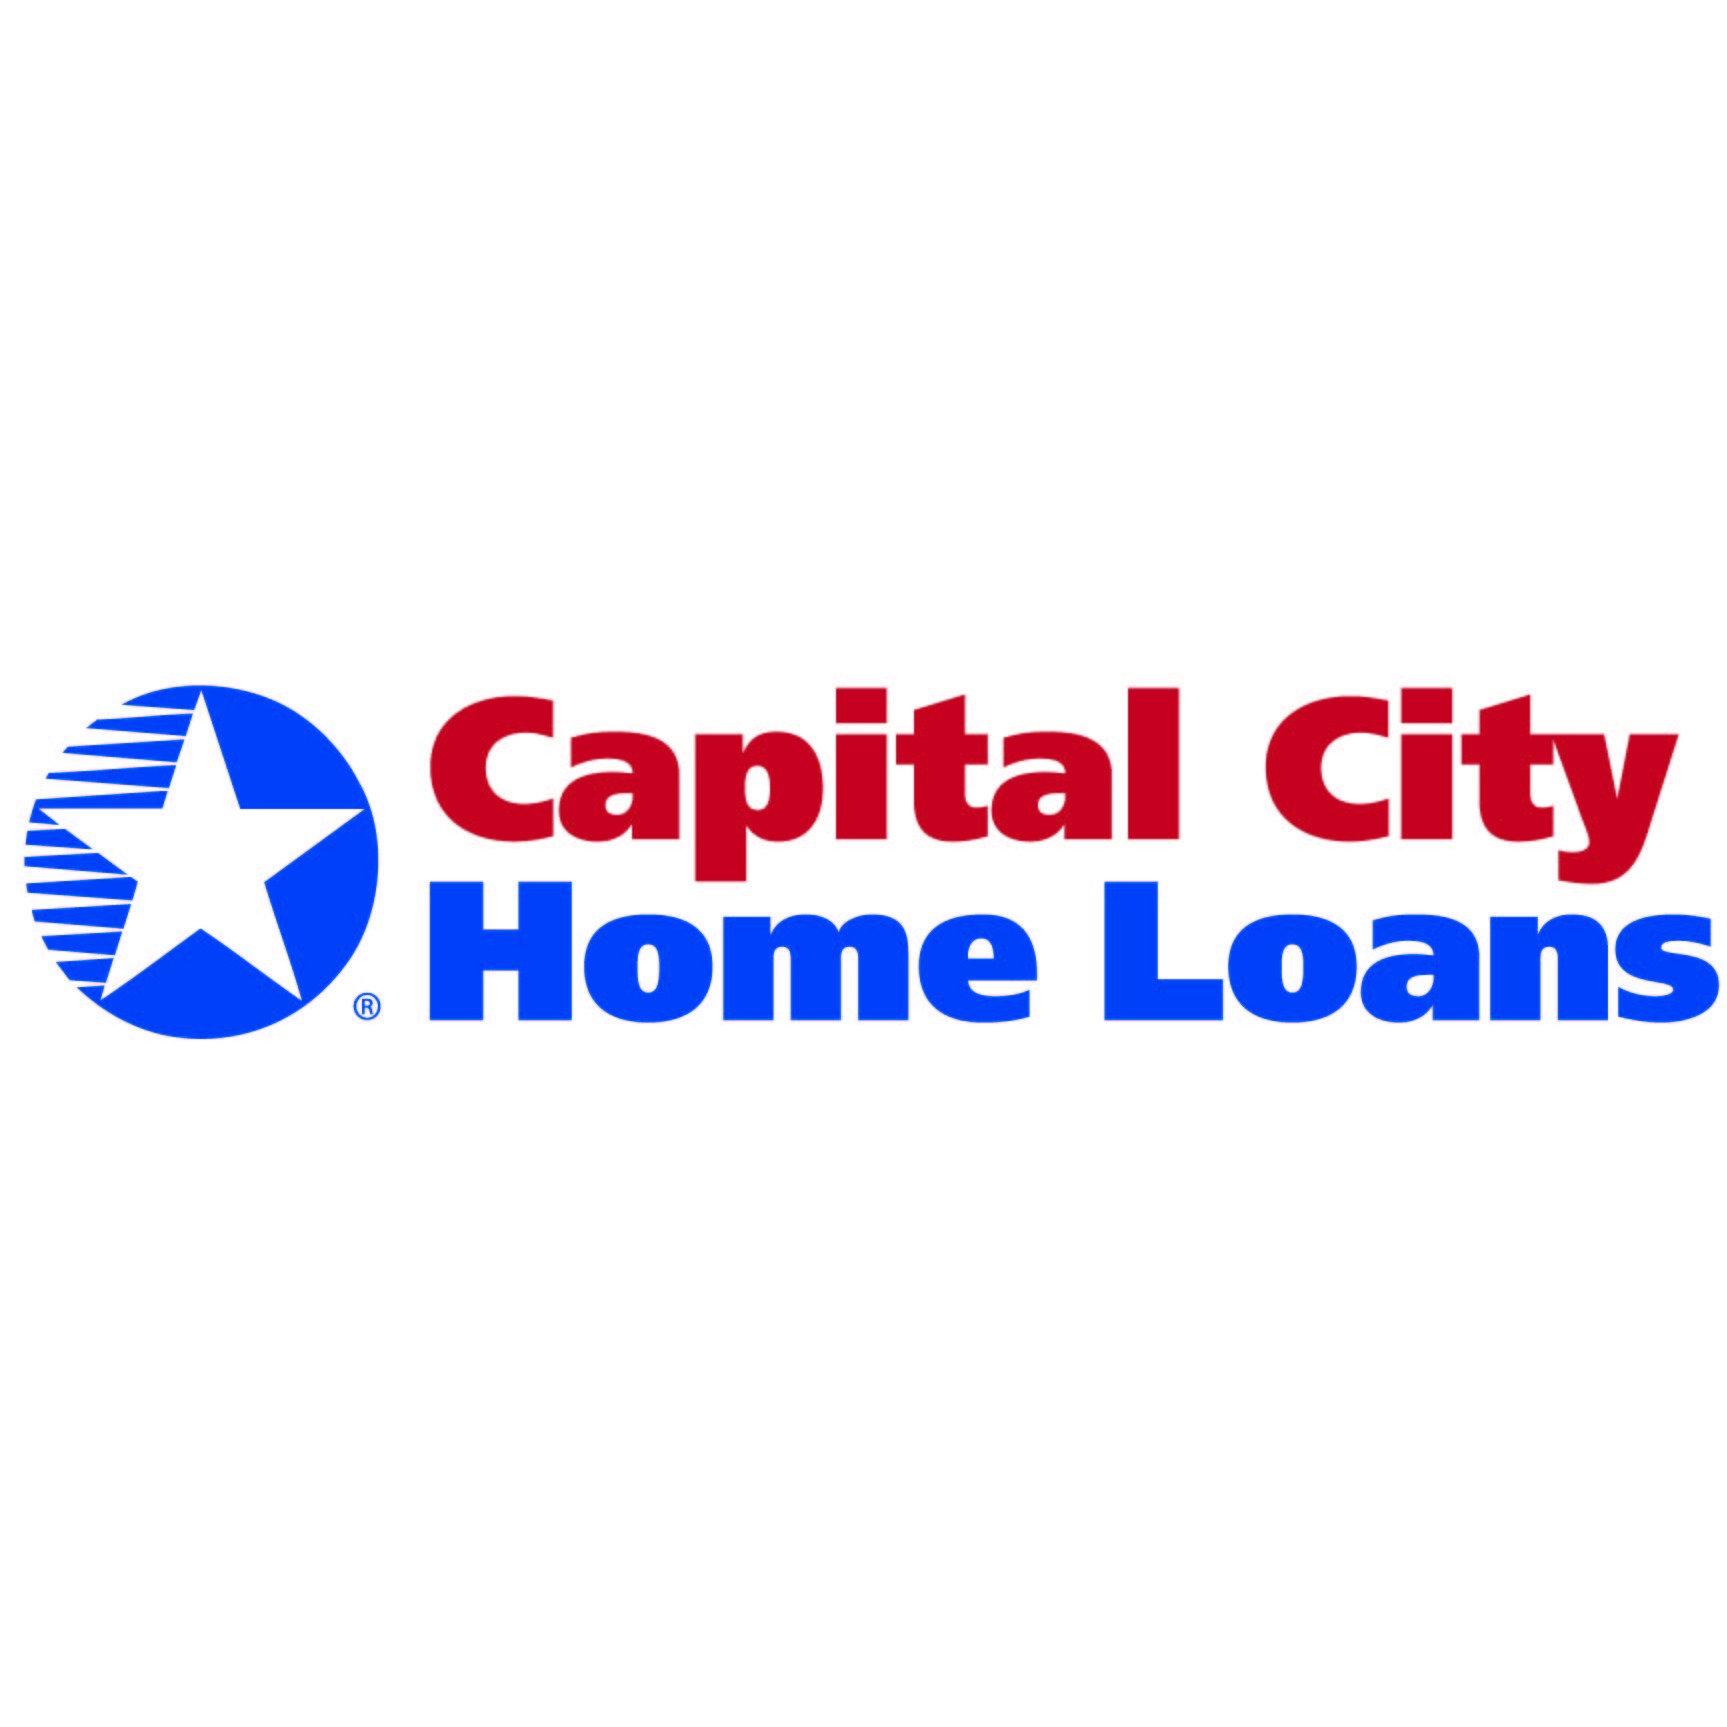 Capital City Home Loans